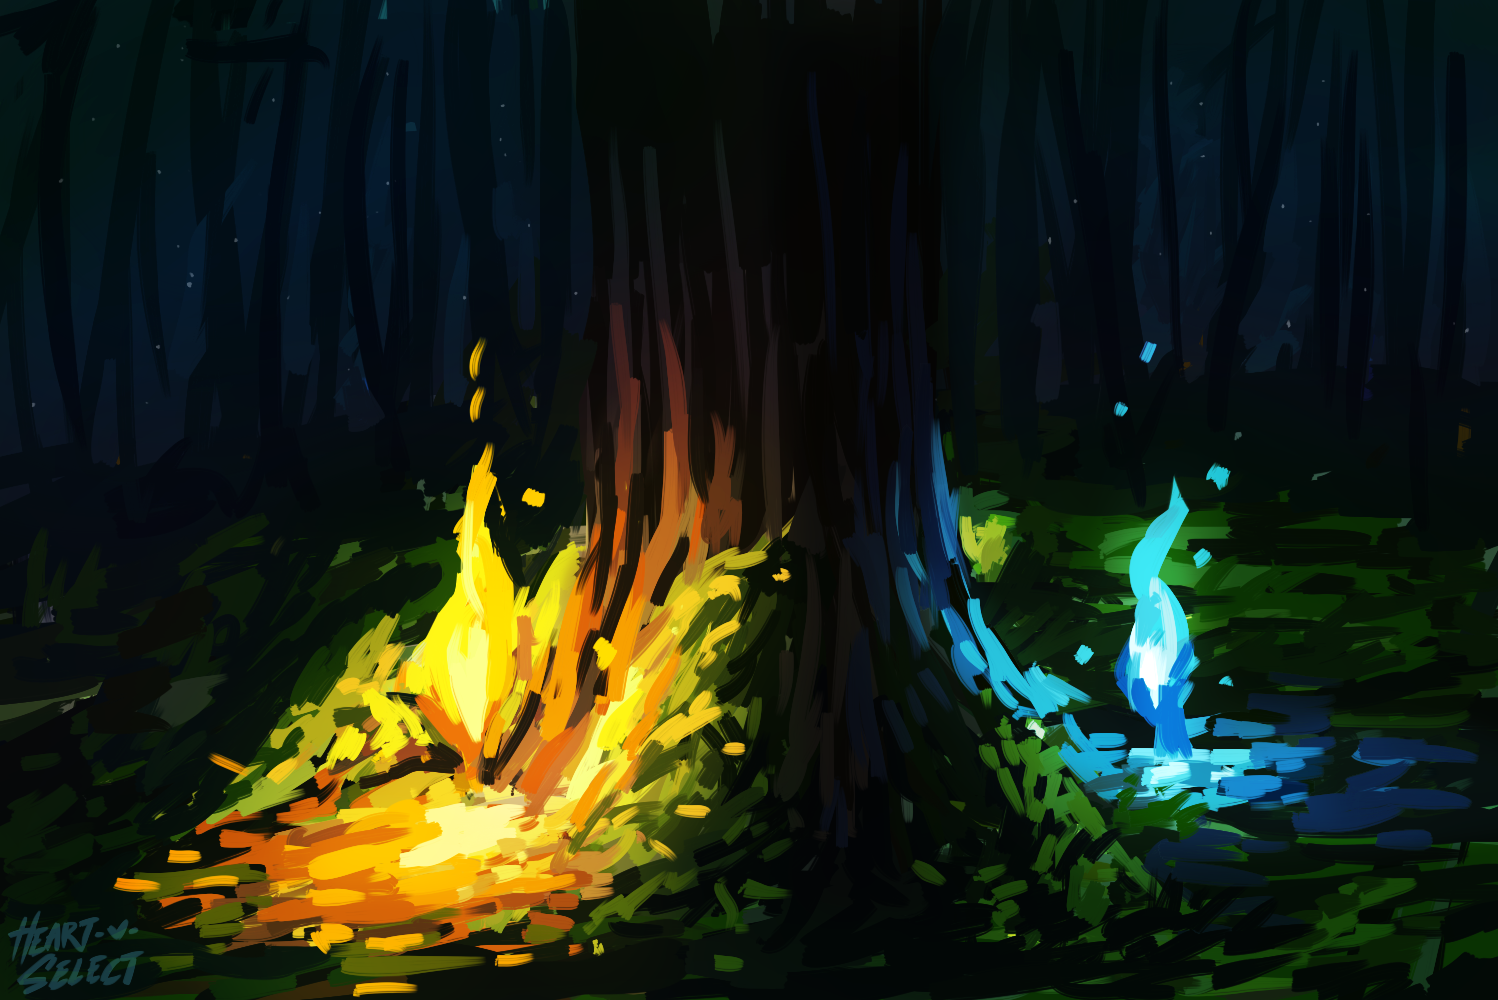 Fire and Wisps